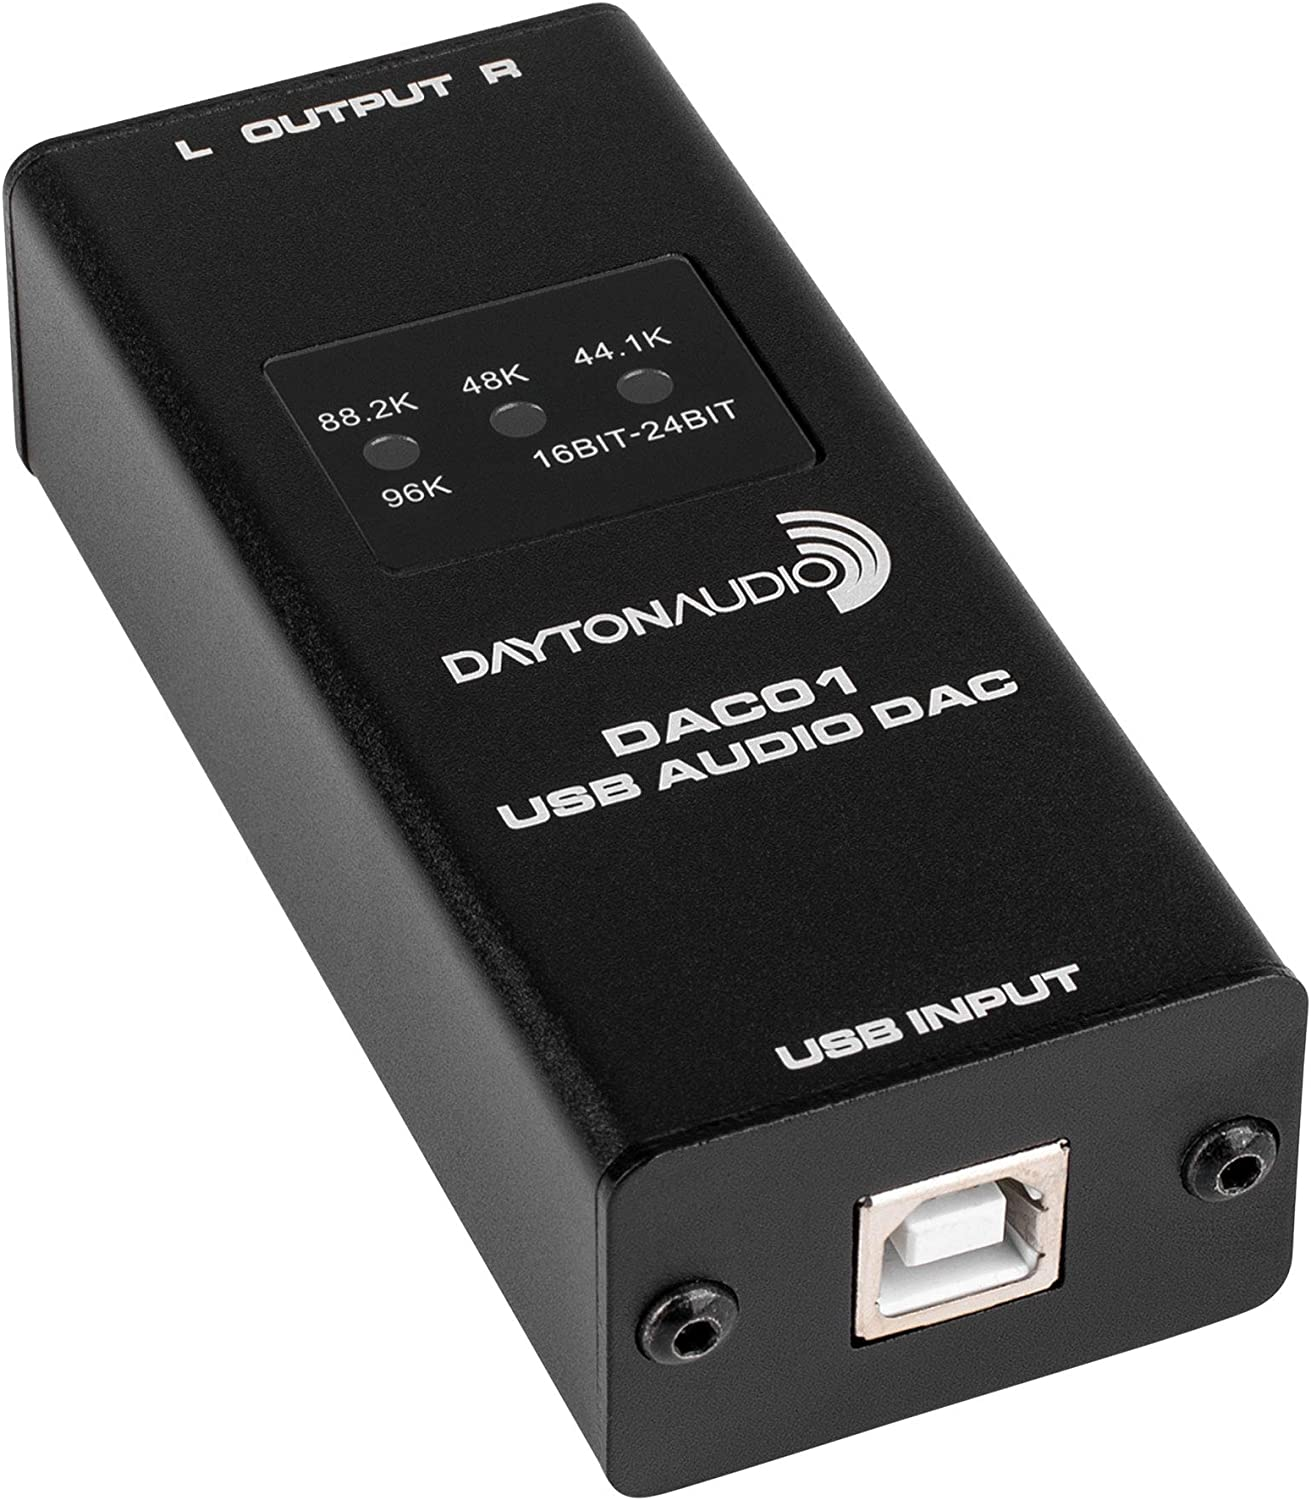 Dayton Audio DAC01 USB Audio DAC 24-bit/96 kHz RCA Output